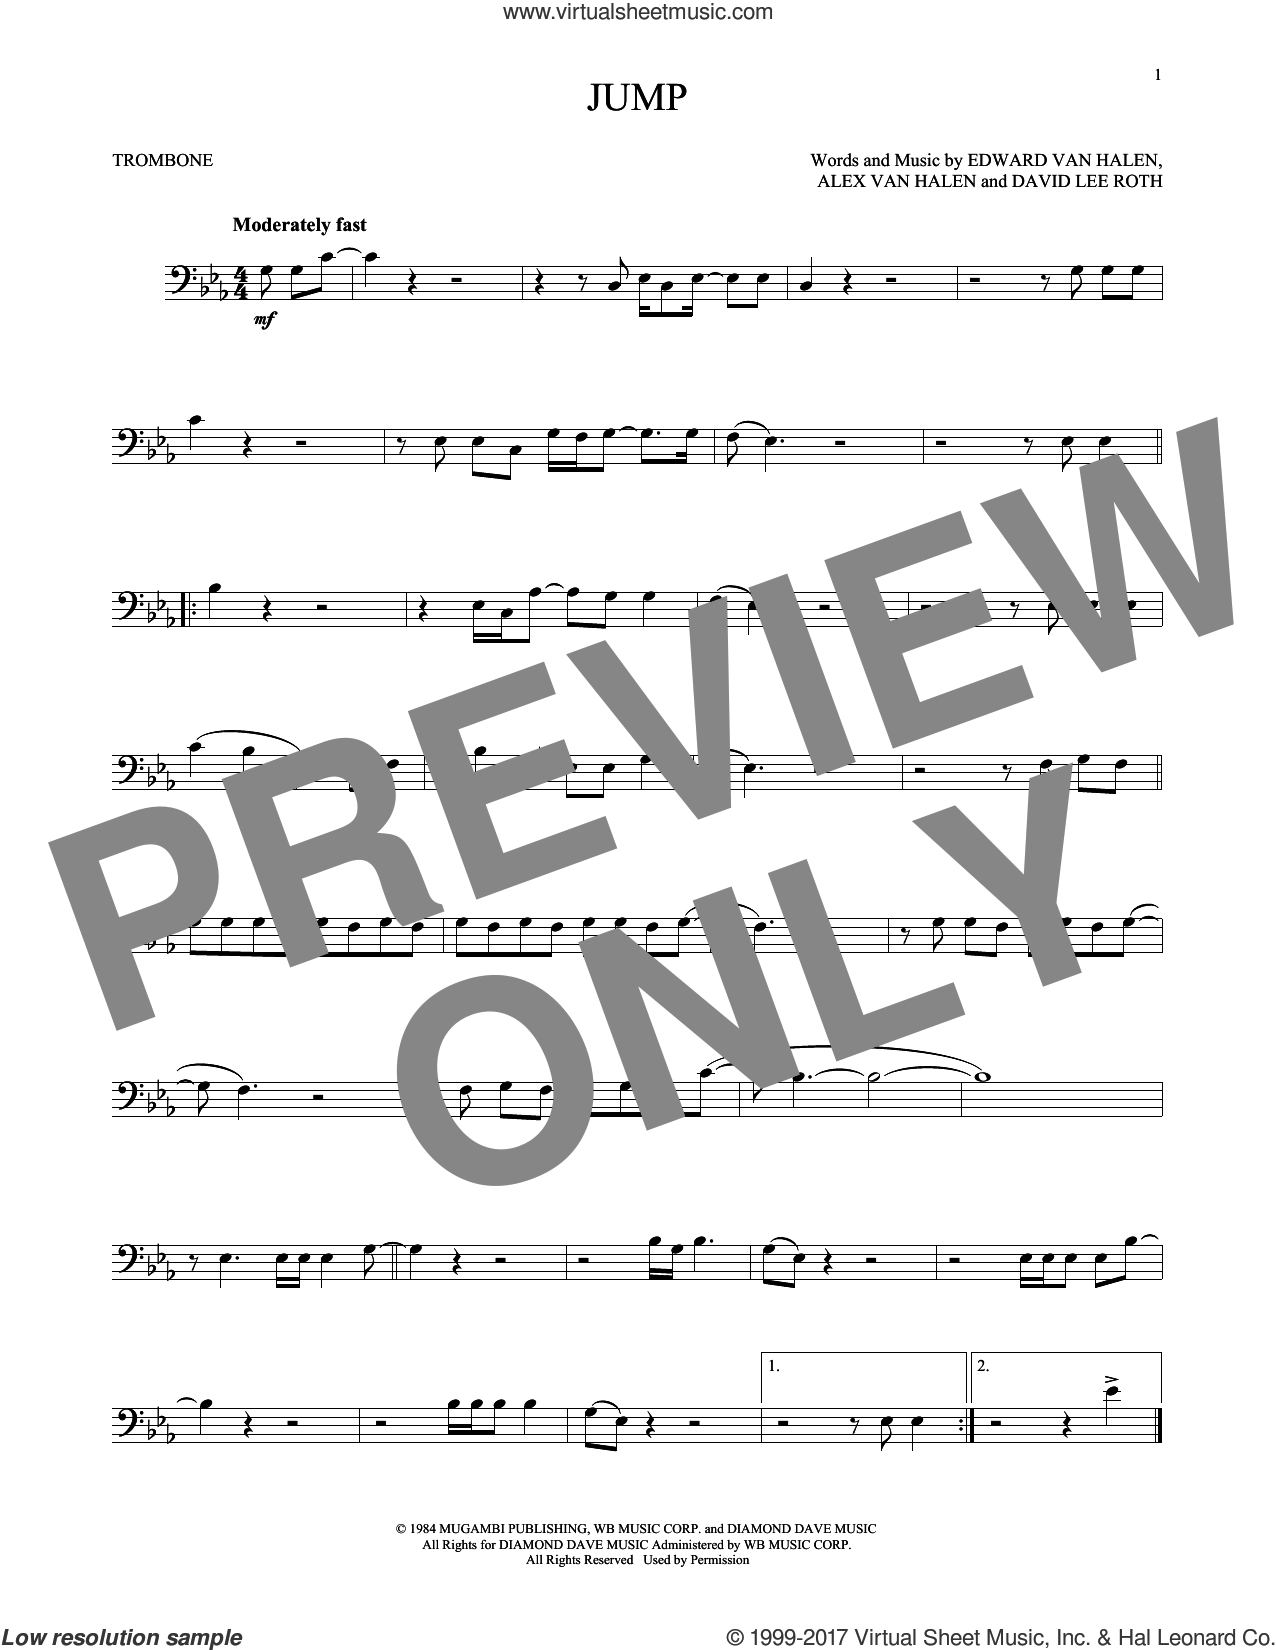 Jump sheet music for trombone solo by Edward Van Halen, Alex Van Halen and David Lee Roth, intermediate skill level